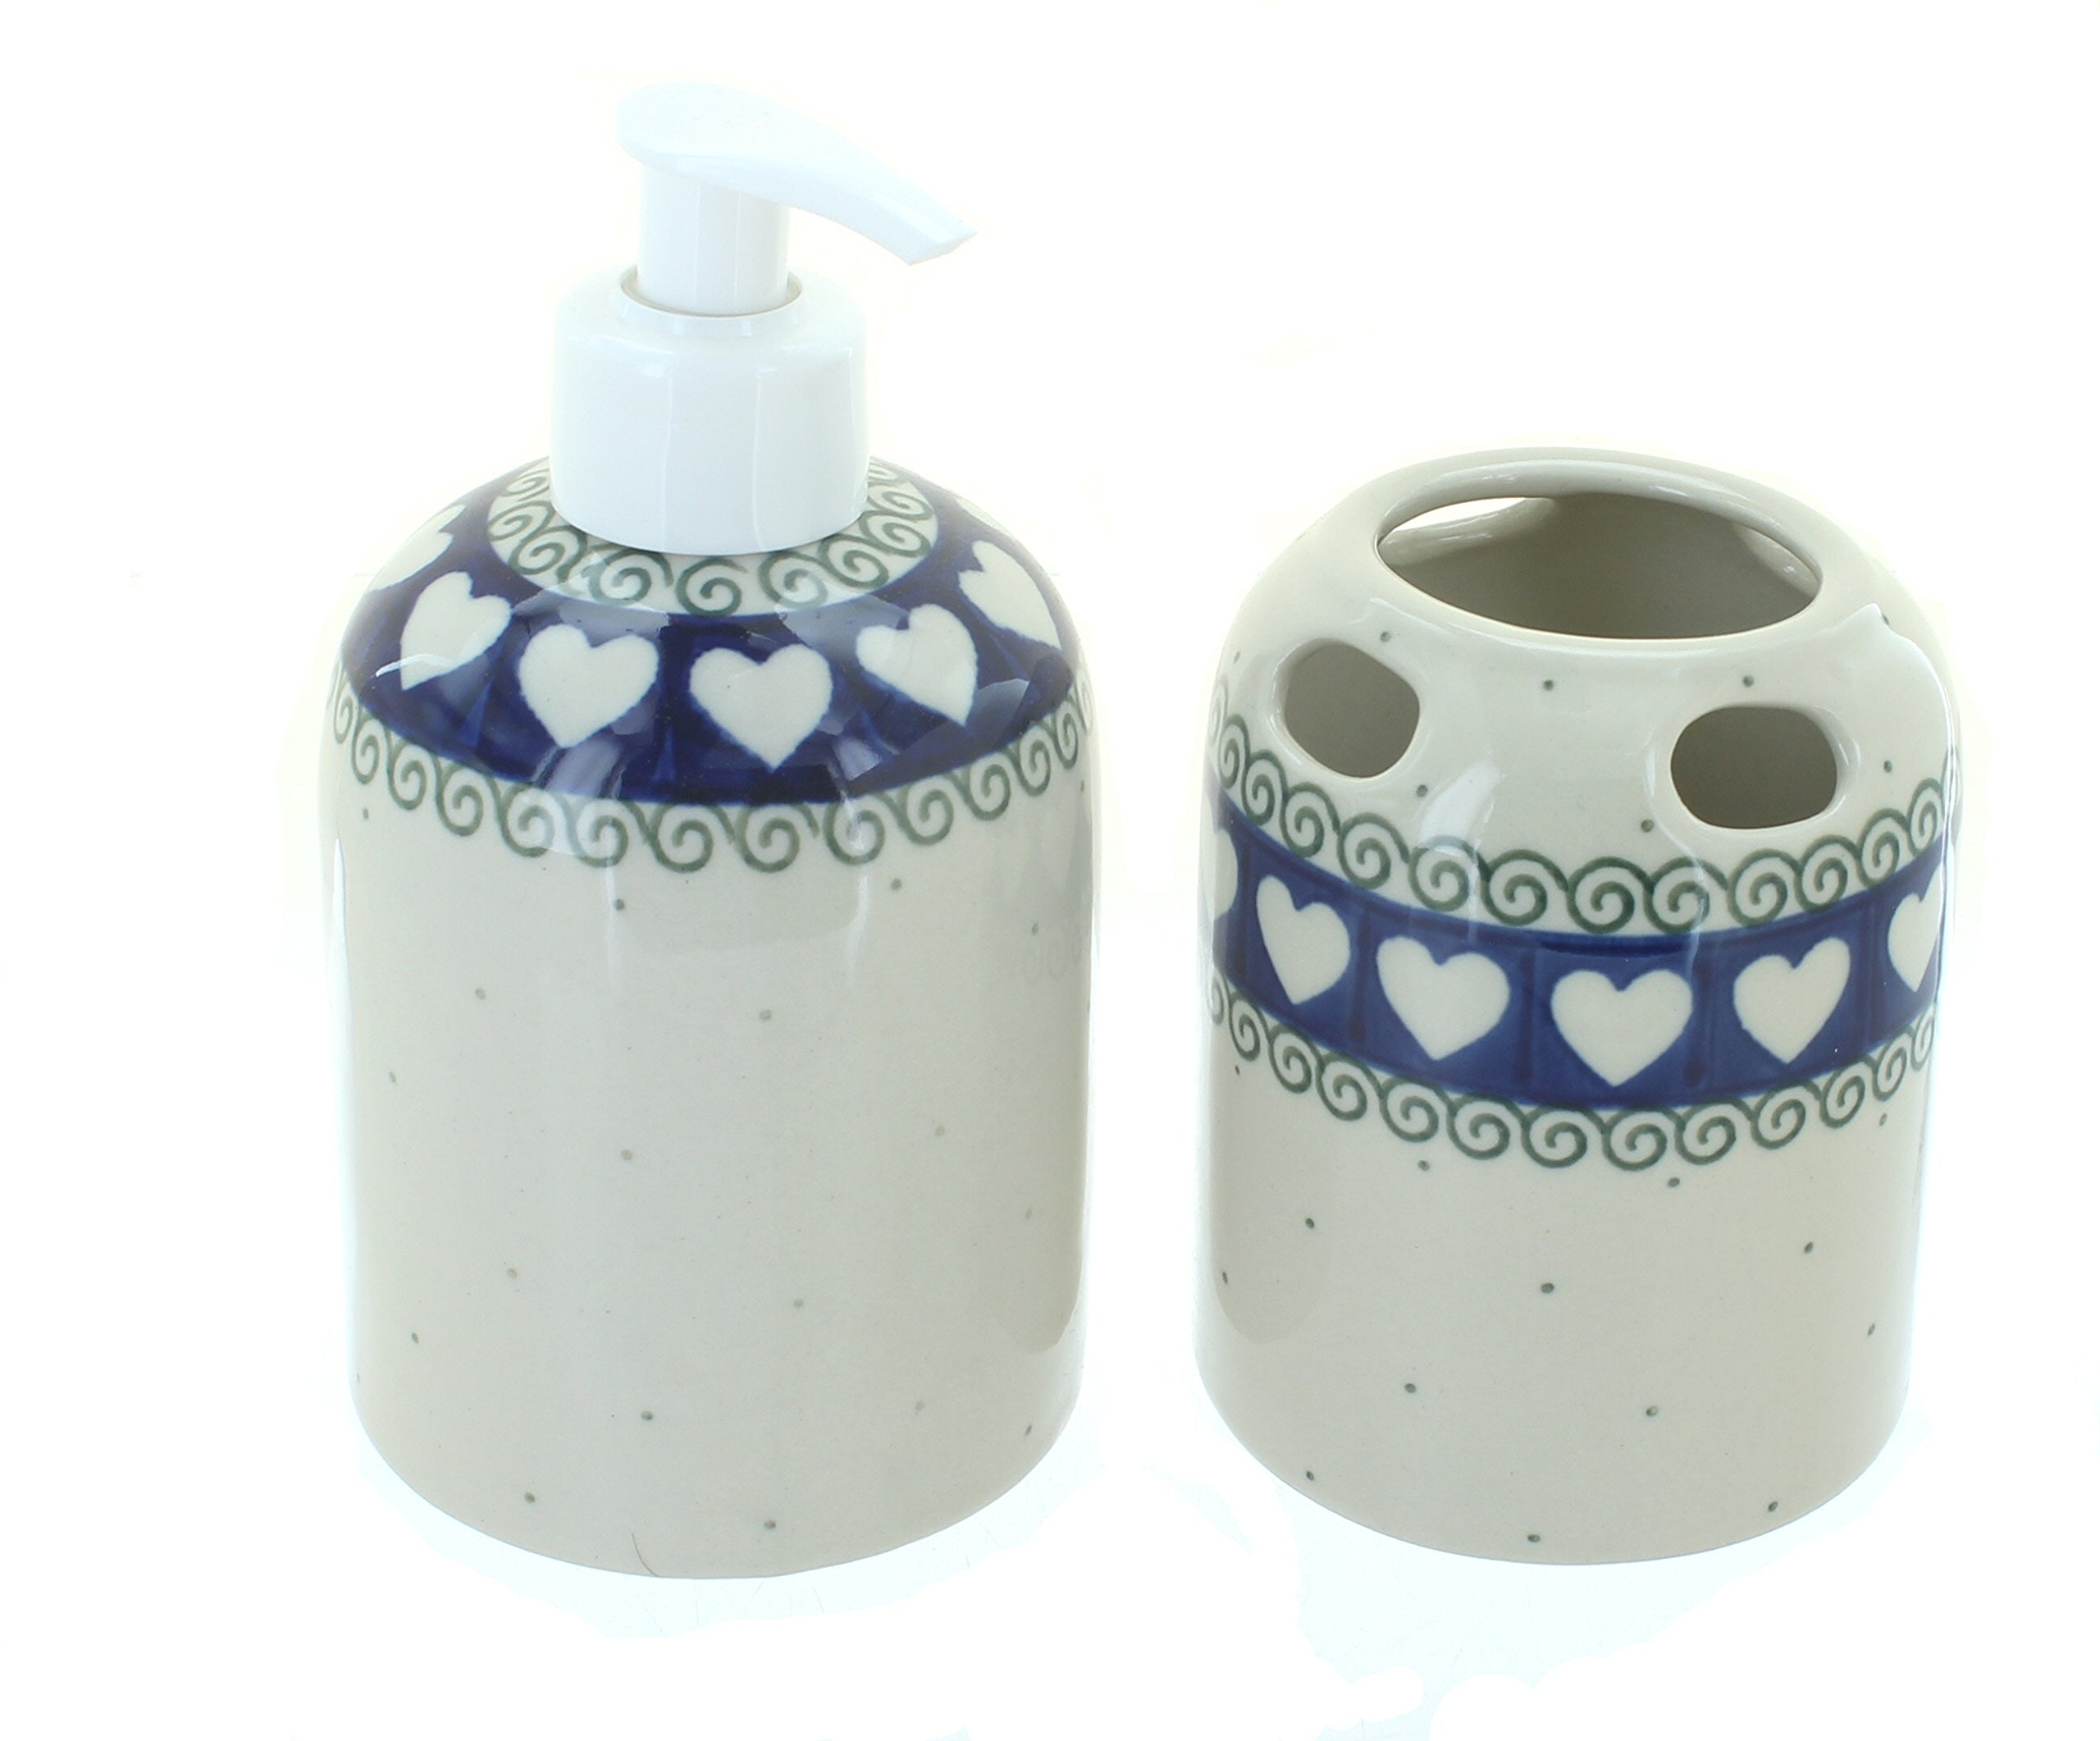 Ceramika Artystyczna Blue Rose Polish Pottery Cupid Soap Dispenser & Toothbrush Holder - Hand made in Poland Safe to use in microwave, dishwasher, freezer, oven No lead or cadmium - bathroom-accessory-sets, bathroom-accessories, bathroom - 81XuR0yG2kL -